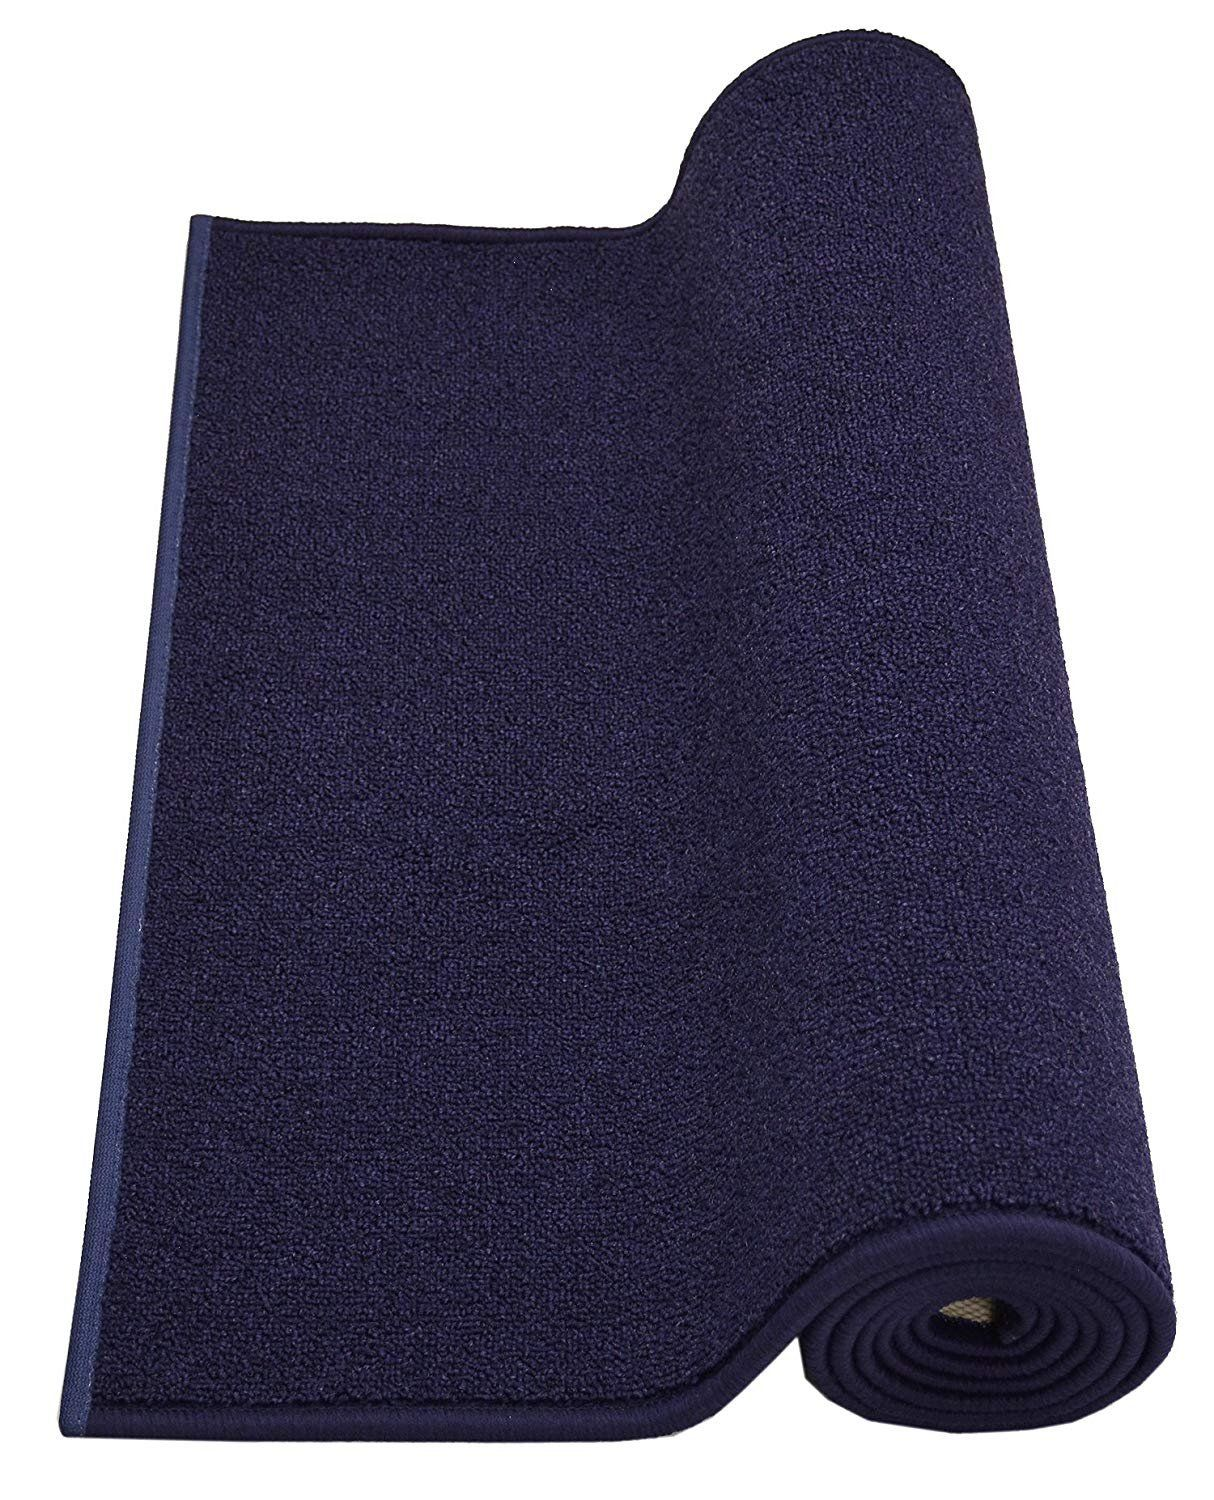 Rugstylesonline Custom Size Solid Navy Blue Roll Runner 36 In Wide X Your Length Choice Slip Resistant Rubber Back Rubber Backed Area Rugs Runner Custom Sizing